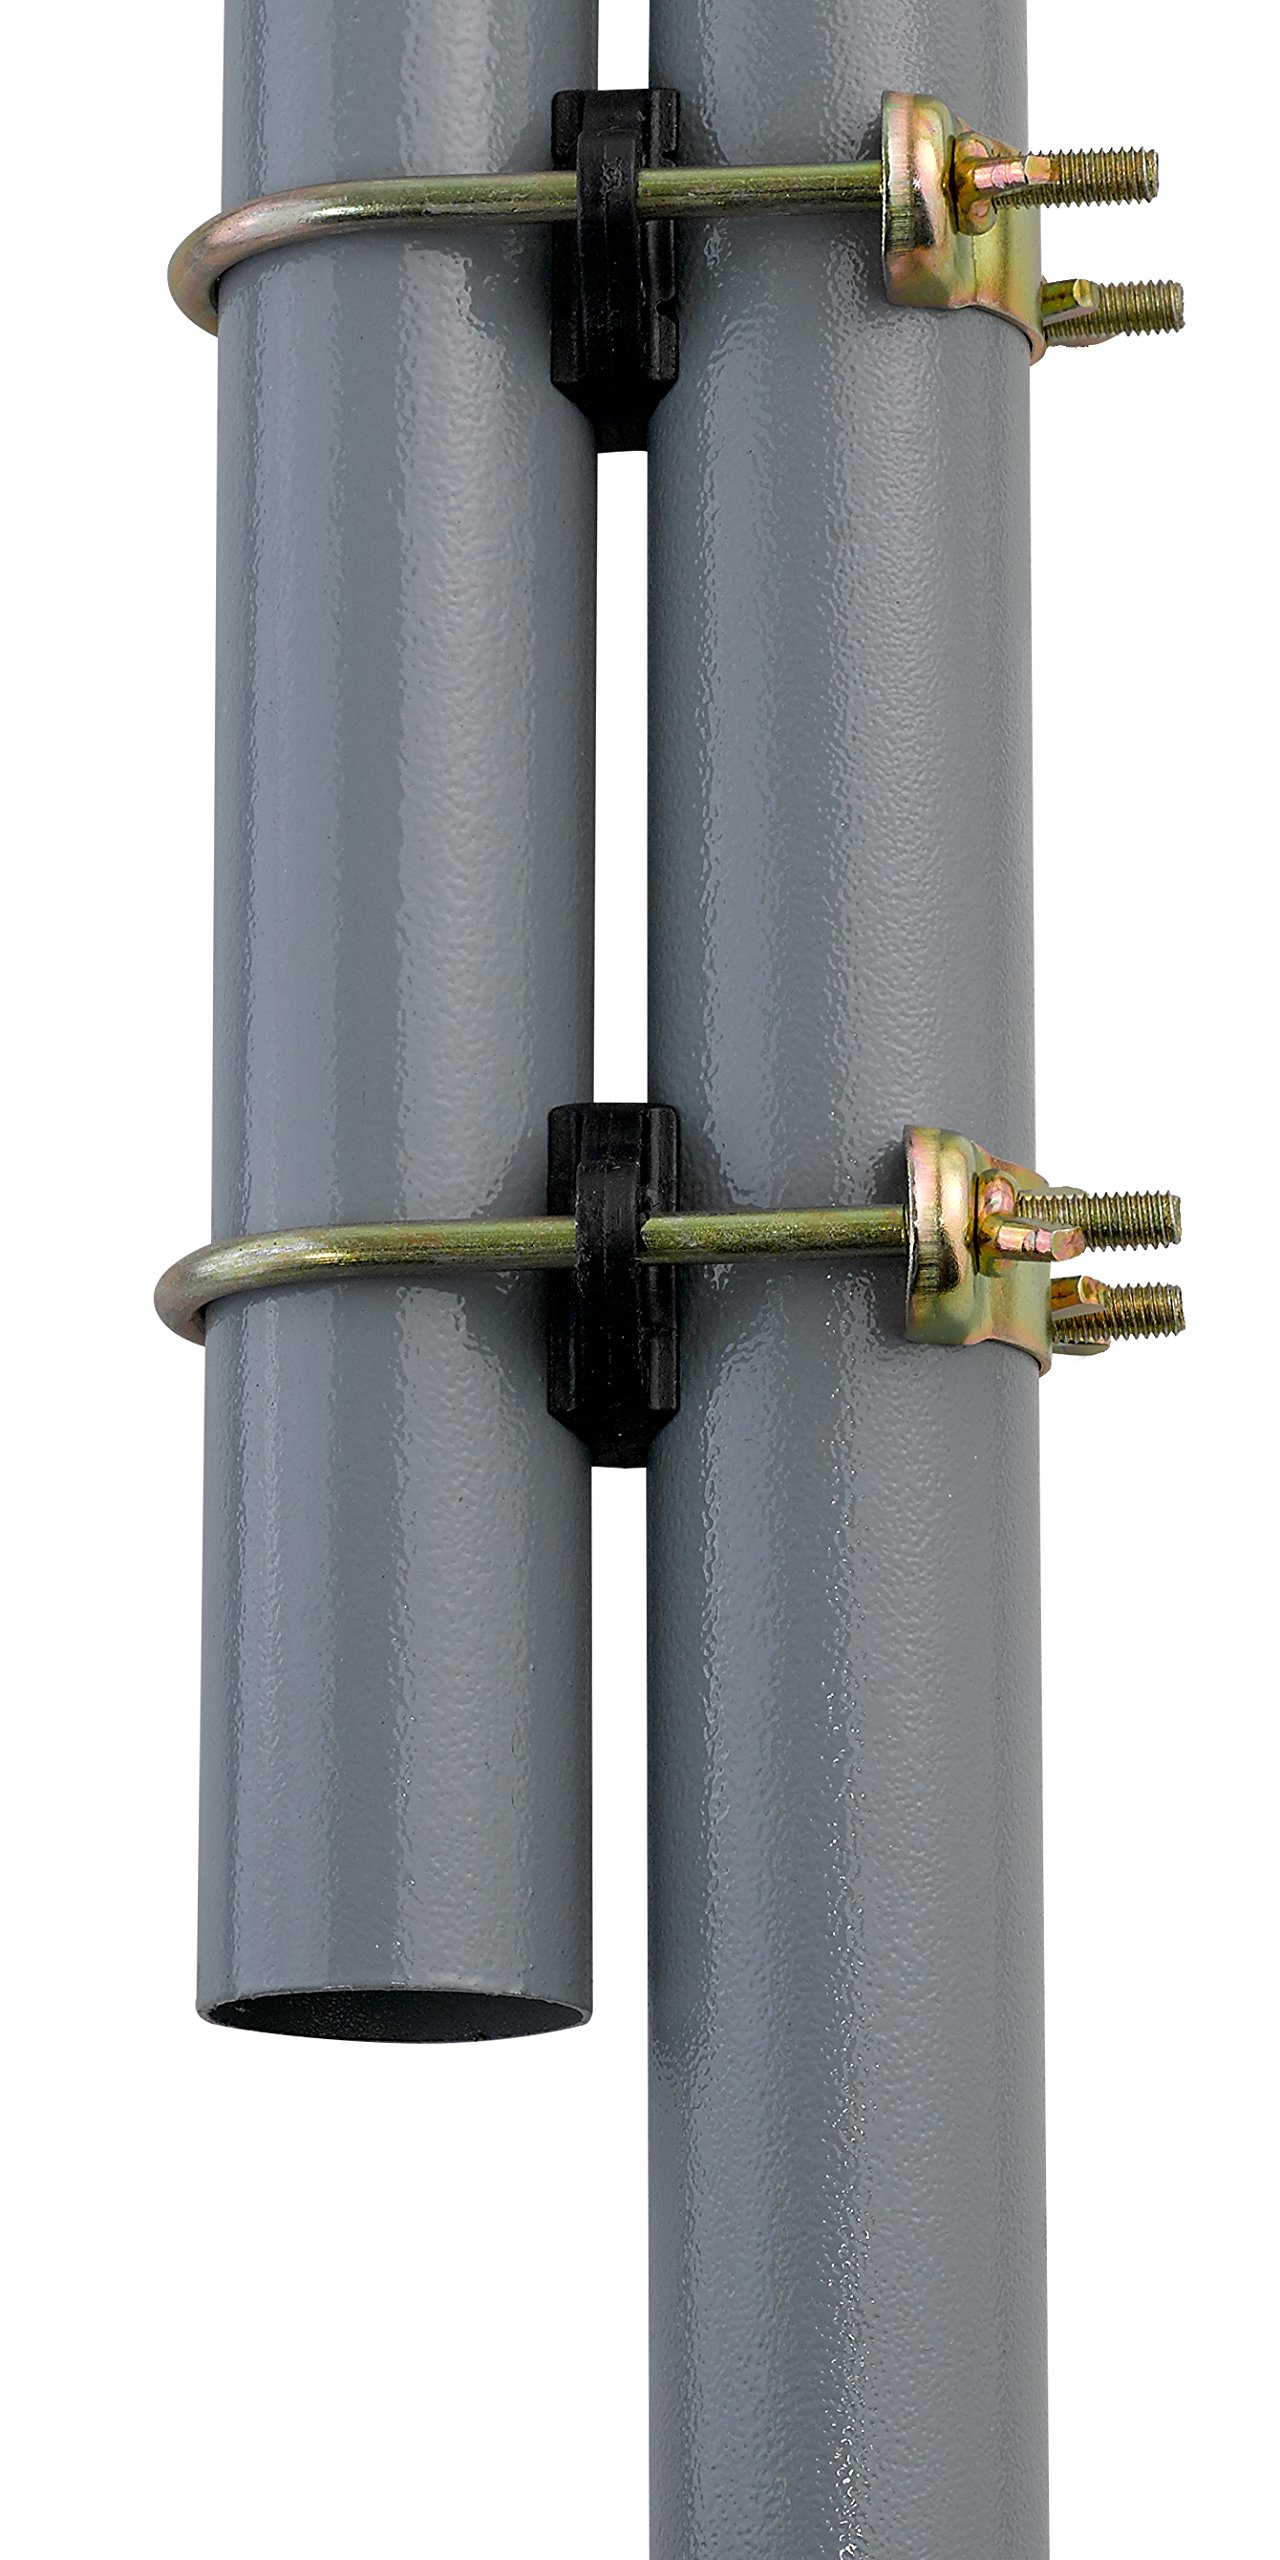 Upper Bounce Trampoline Enclosure Pole Connecter, Fits for Poles Measuringup to 1.5'' Diameter, Andup to 1.75'' Diameter Leg by Upper Bounce (Image #6)